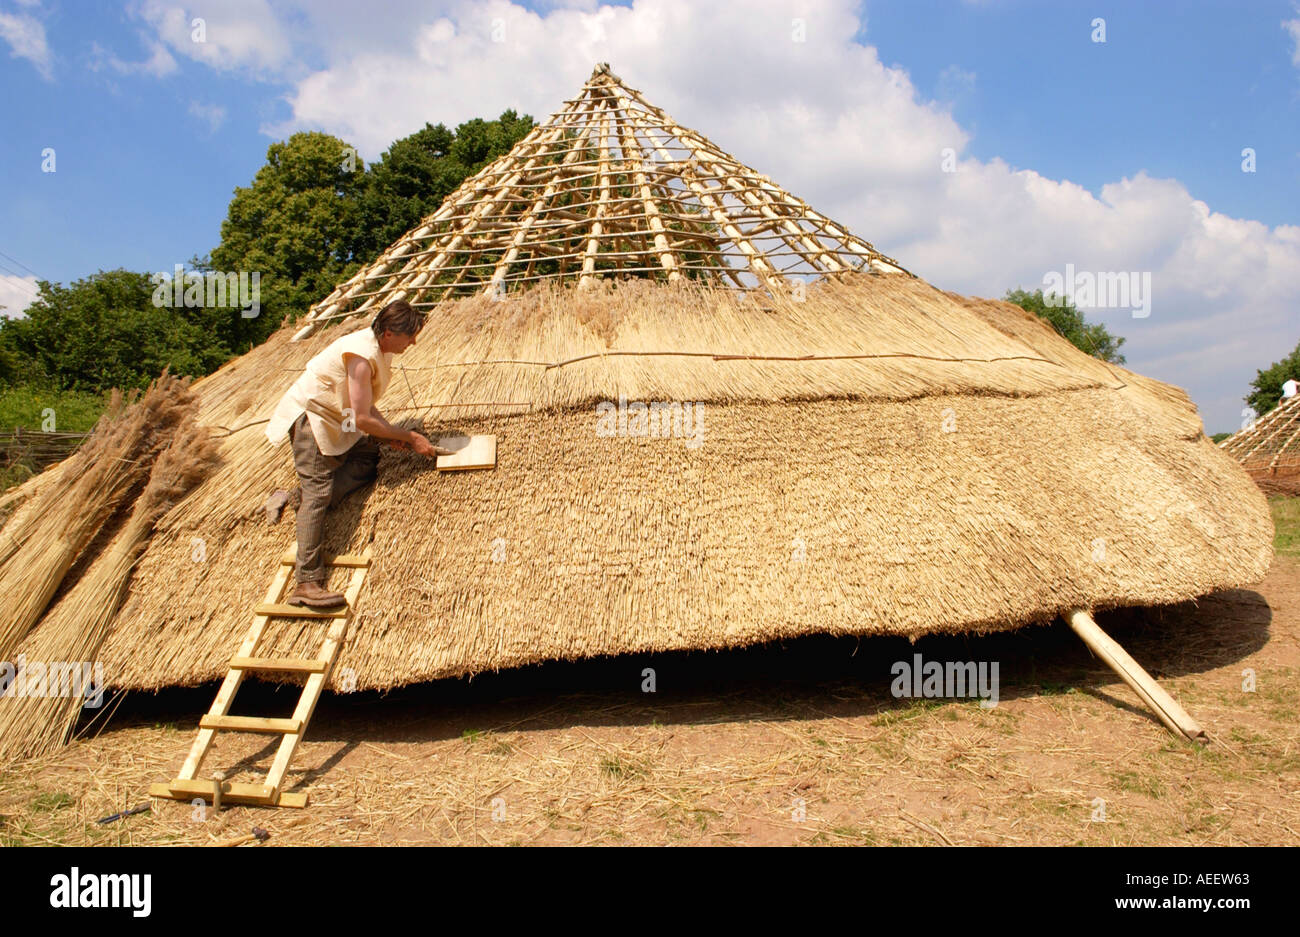 Thatching roof of Iron Age roundhouse being built using traditional techniques at Cinderbury Iron Age Farm near Coleford UK - Stock Image